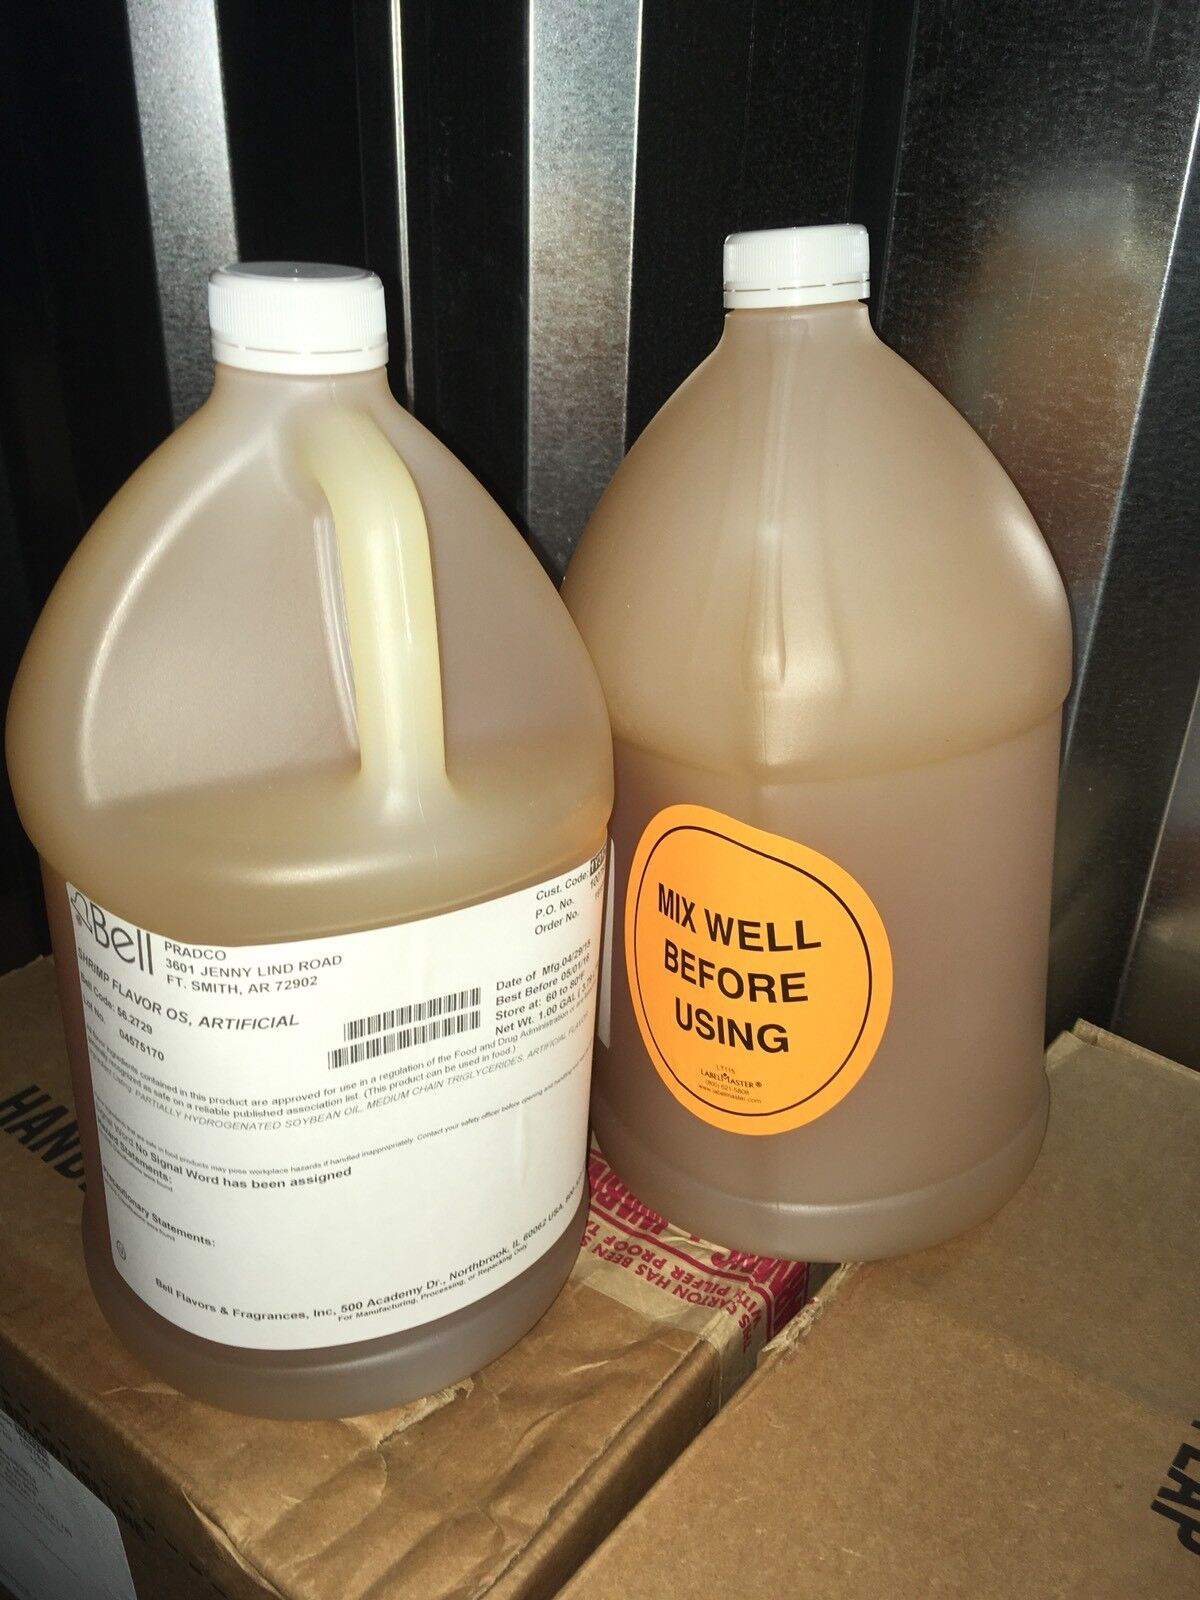 1 GALLON SHRIMP SCENT CONCENTRATED YUM LPT BIOLOGICAL  ENZYME ATTRACTANT BULK OIL  with 60% off discount